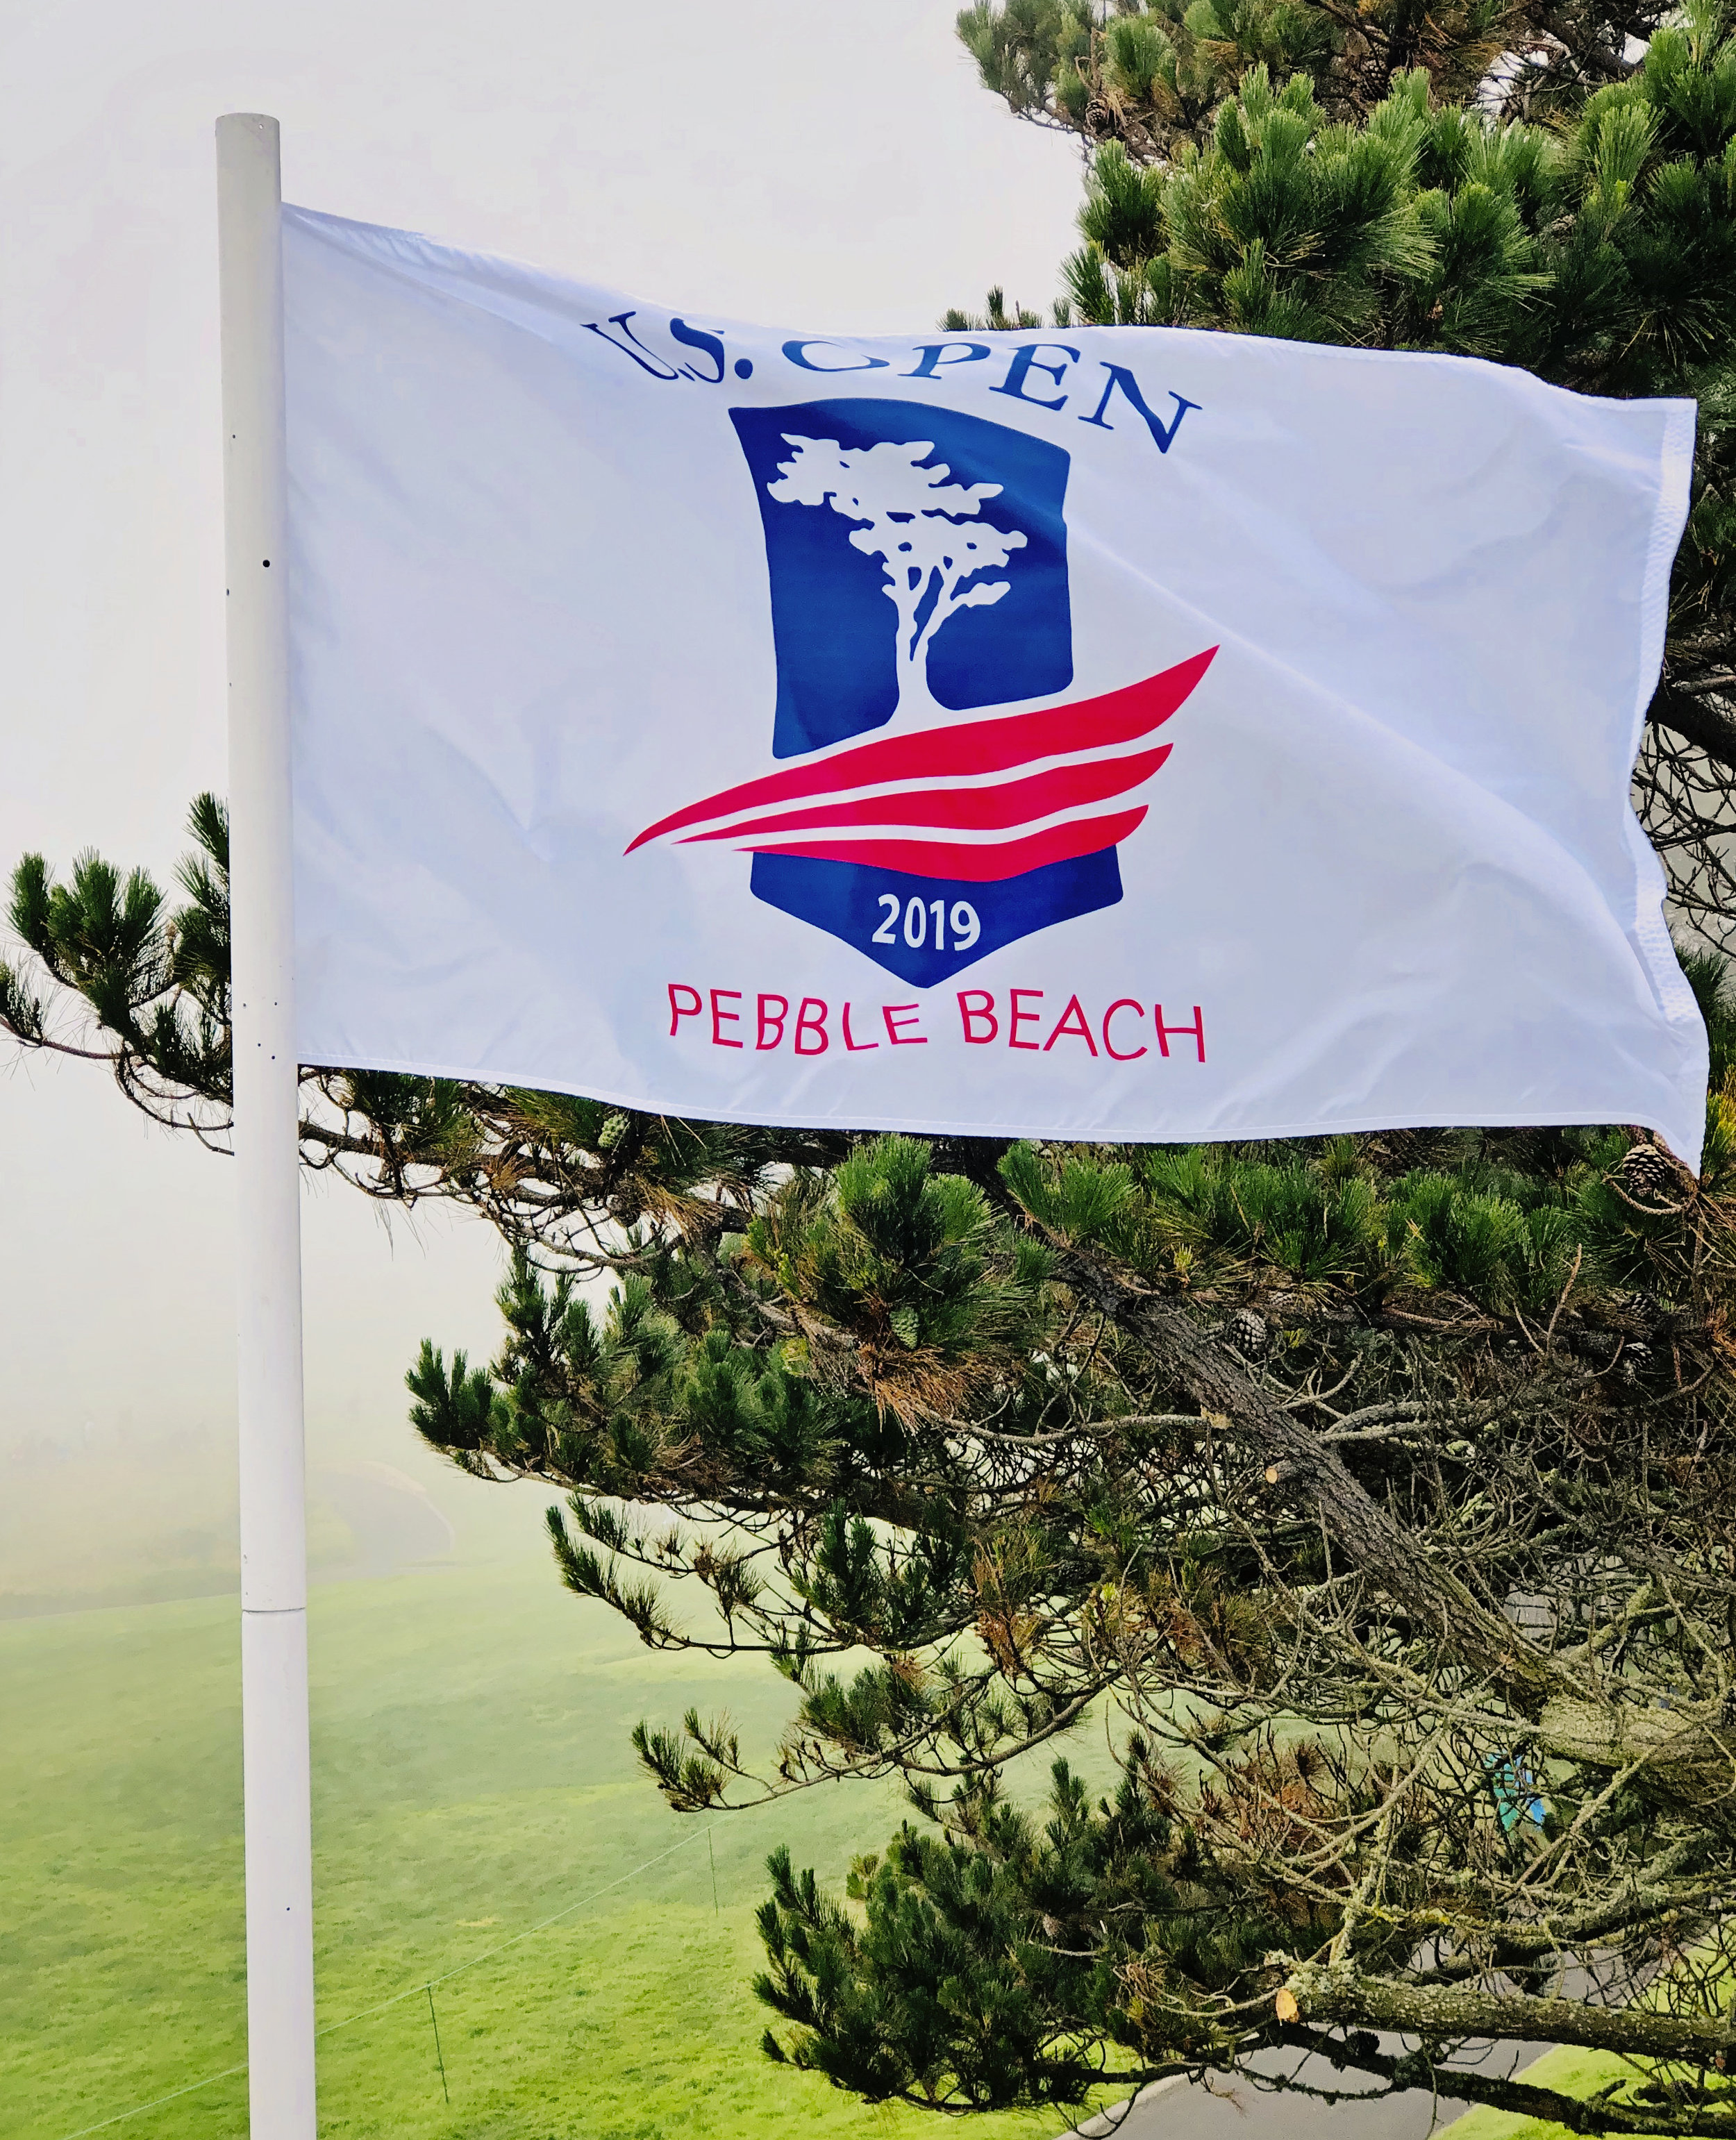 On to the Monterey Peninsula, as the fog rolls into Pebble Beach, making it a bit chilly for summer!